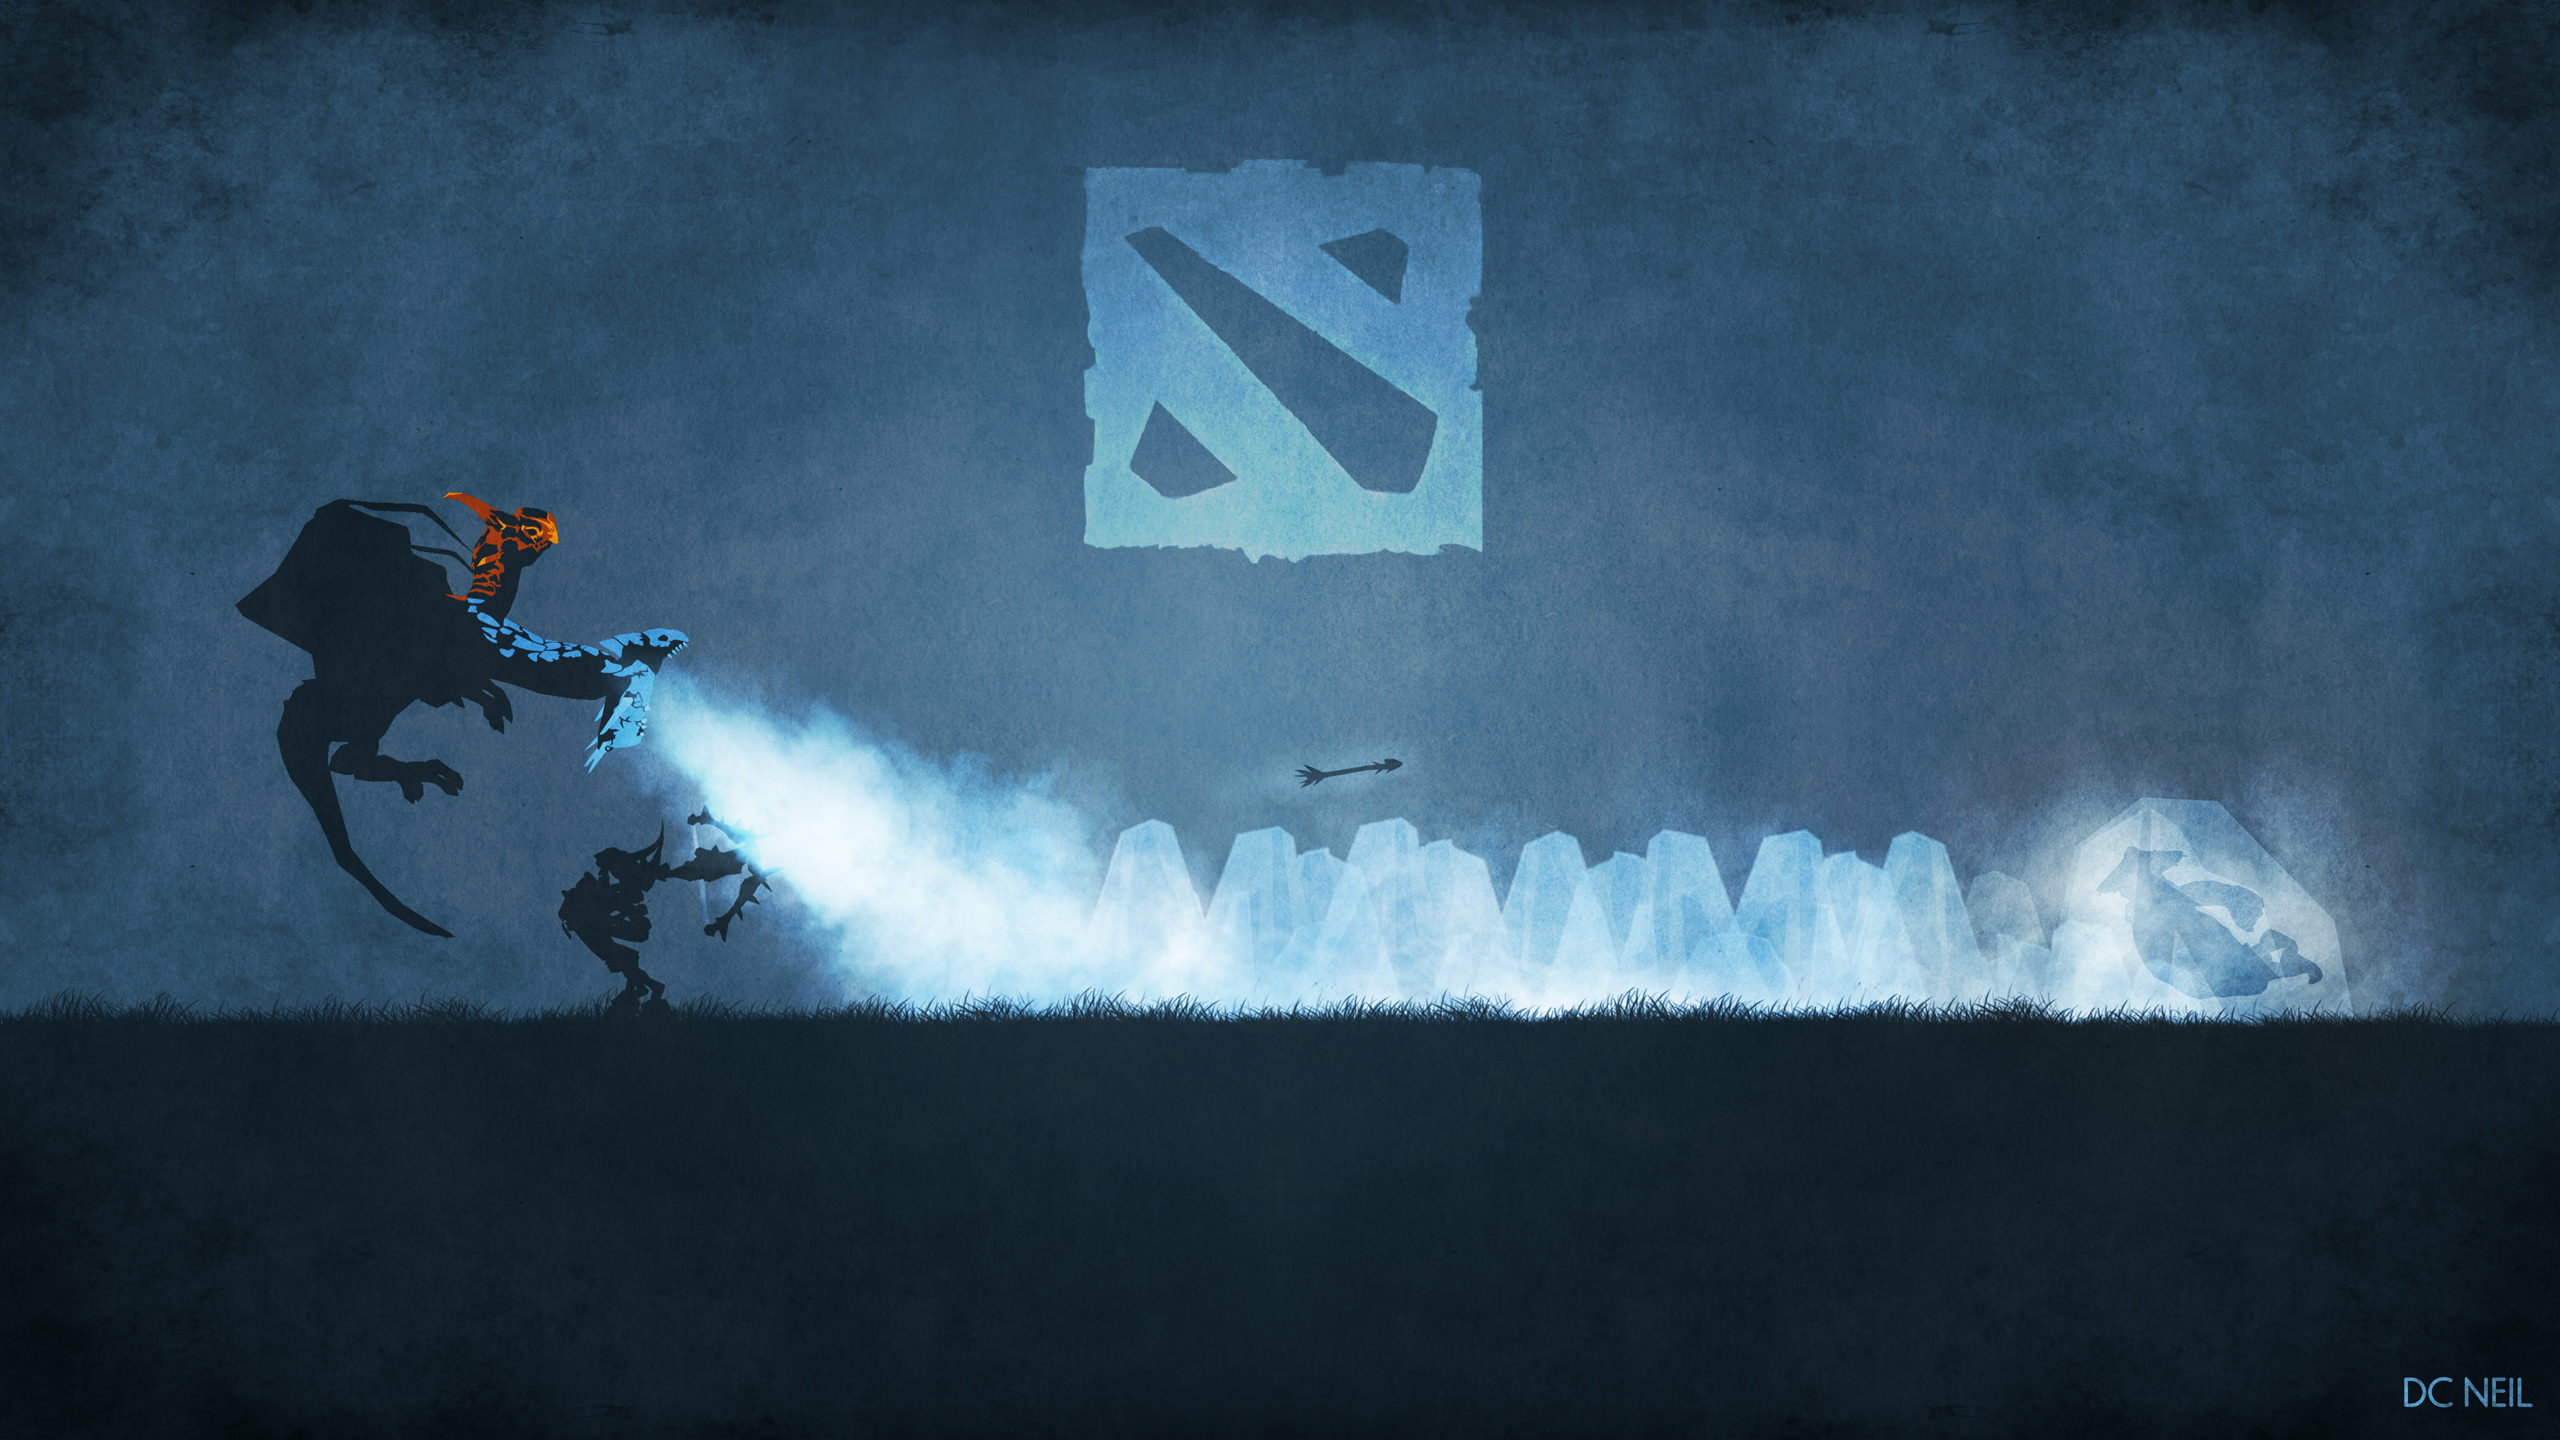 Hd wallpaper dota 2 - Hd Wallpaper Dota 2 33